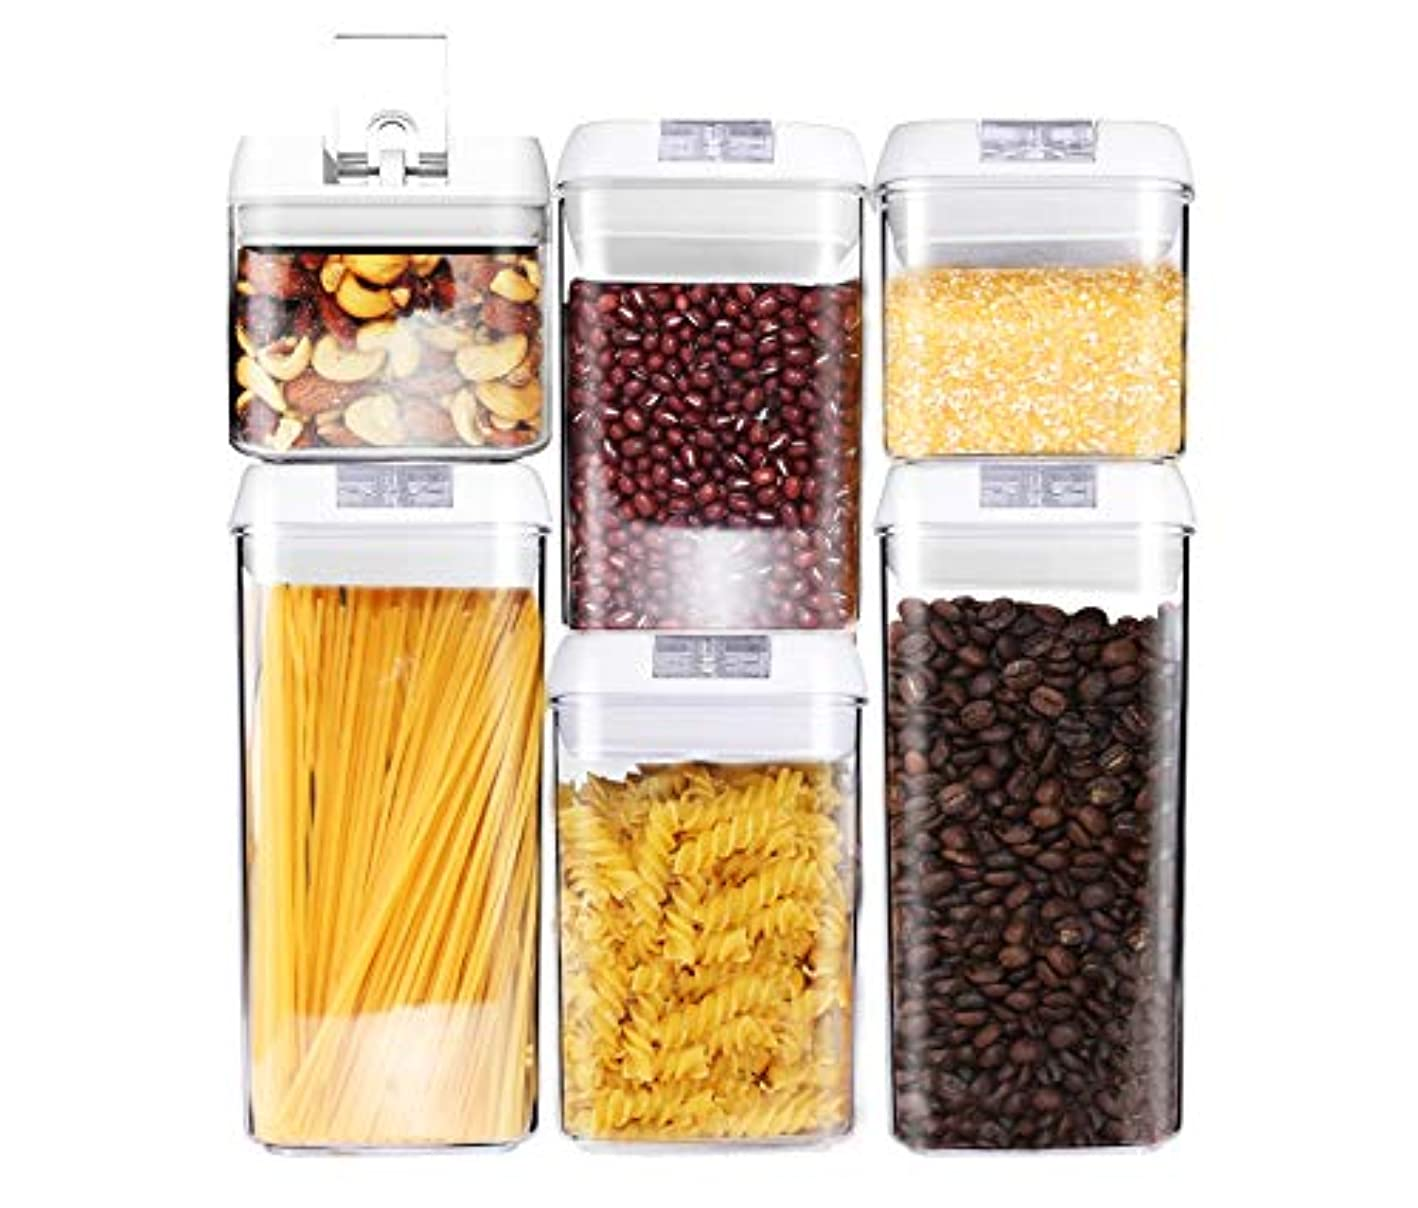 6 Piece Airtight Food Storage Containers - Kitchen Storage Set for Pantry Organization and Storage, Durable Plastic Storage Containers used for flour, pasta, as a Cereal Container! Air Tight!